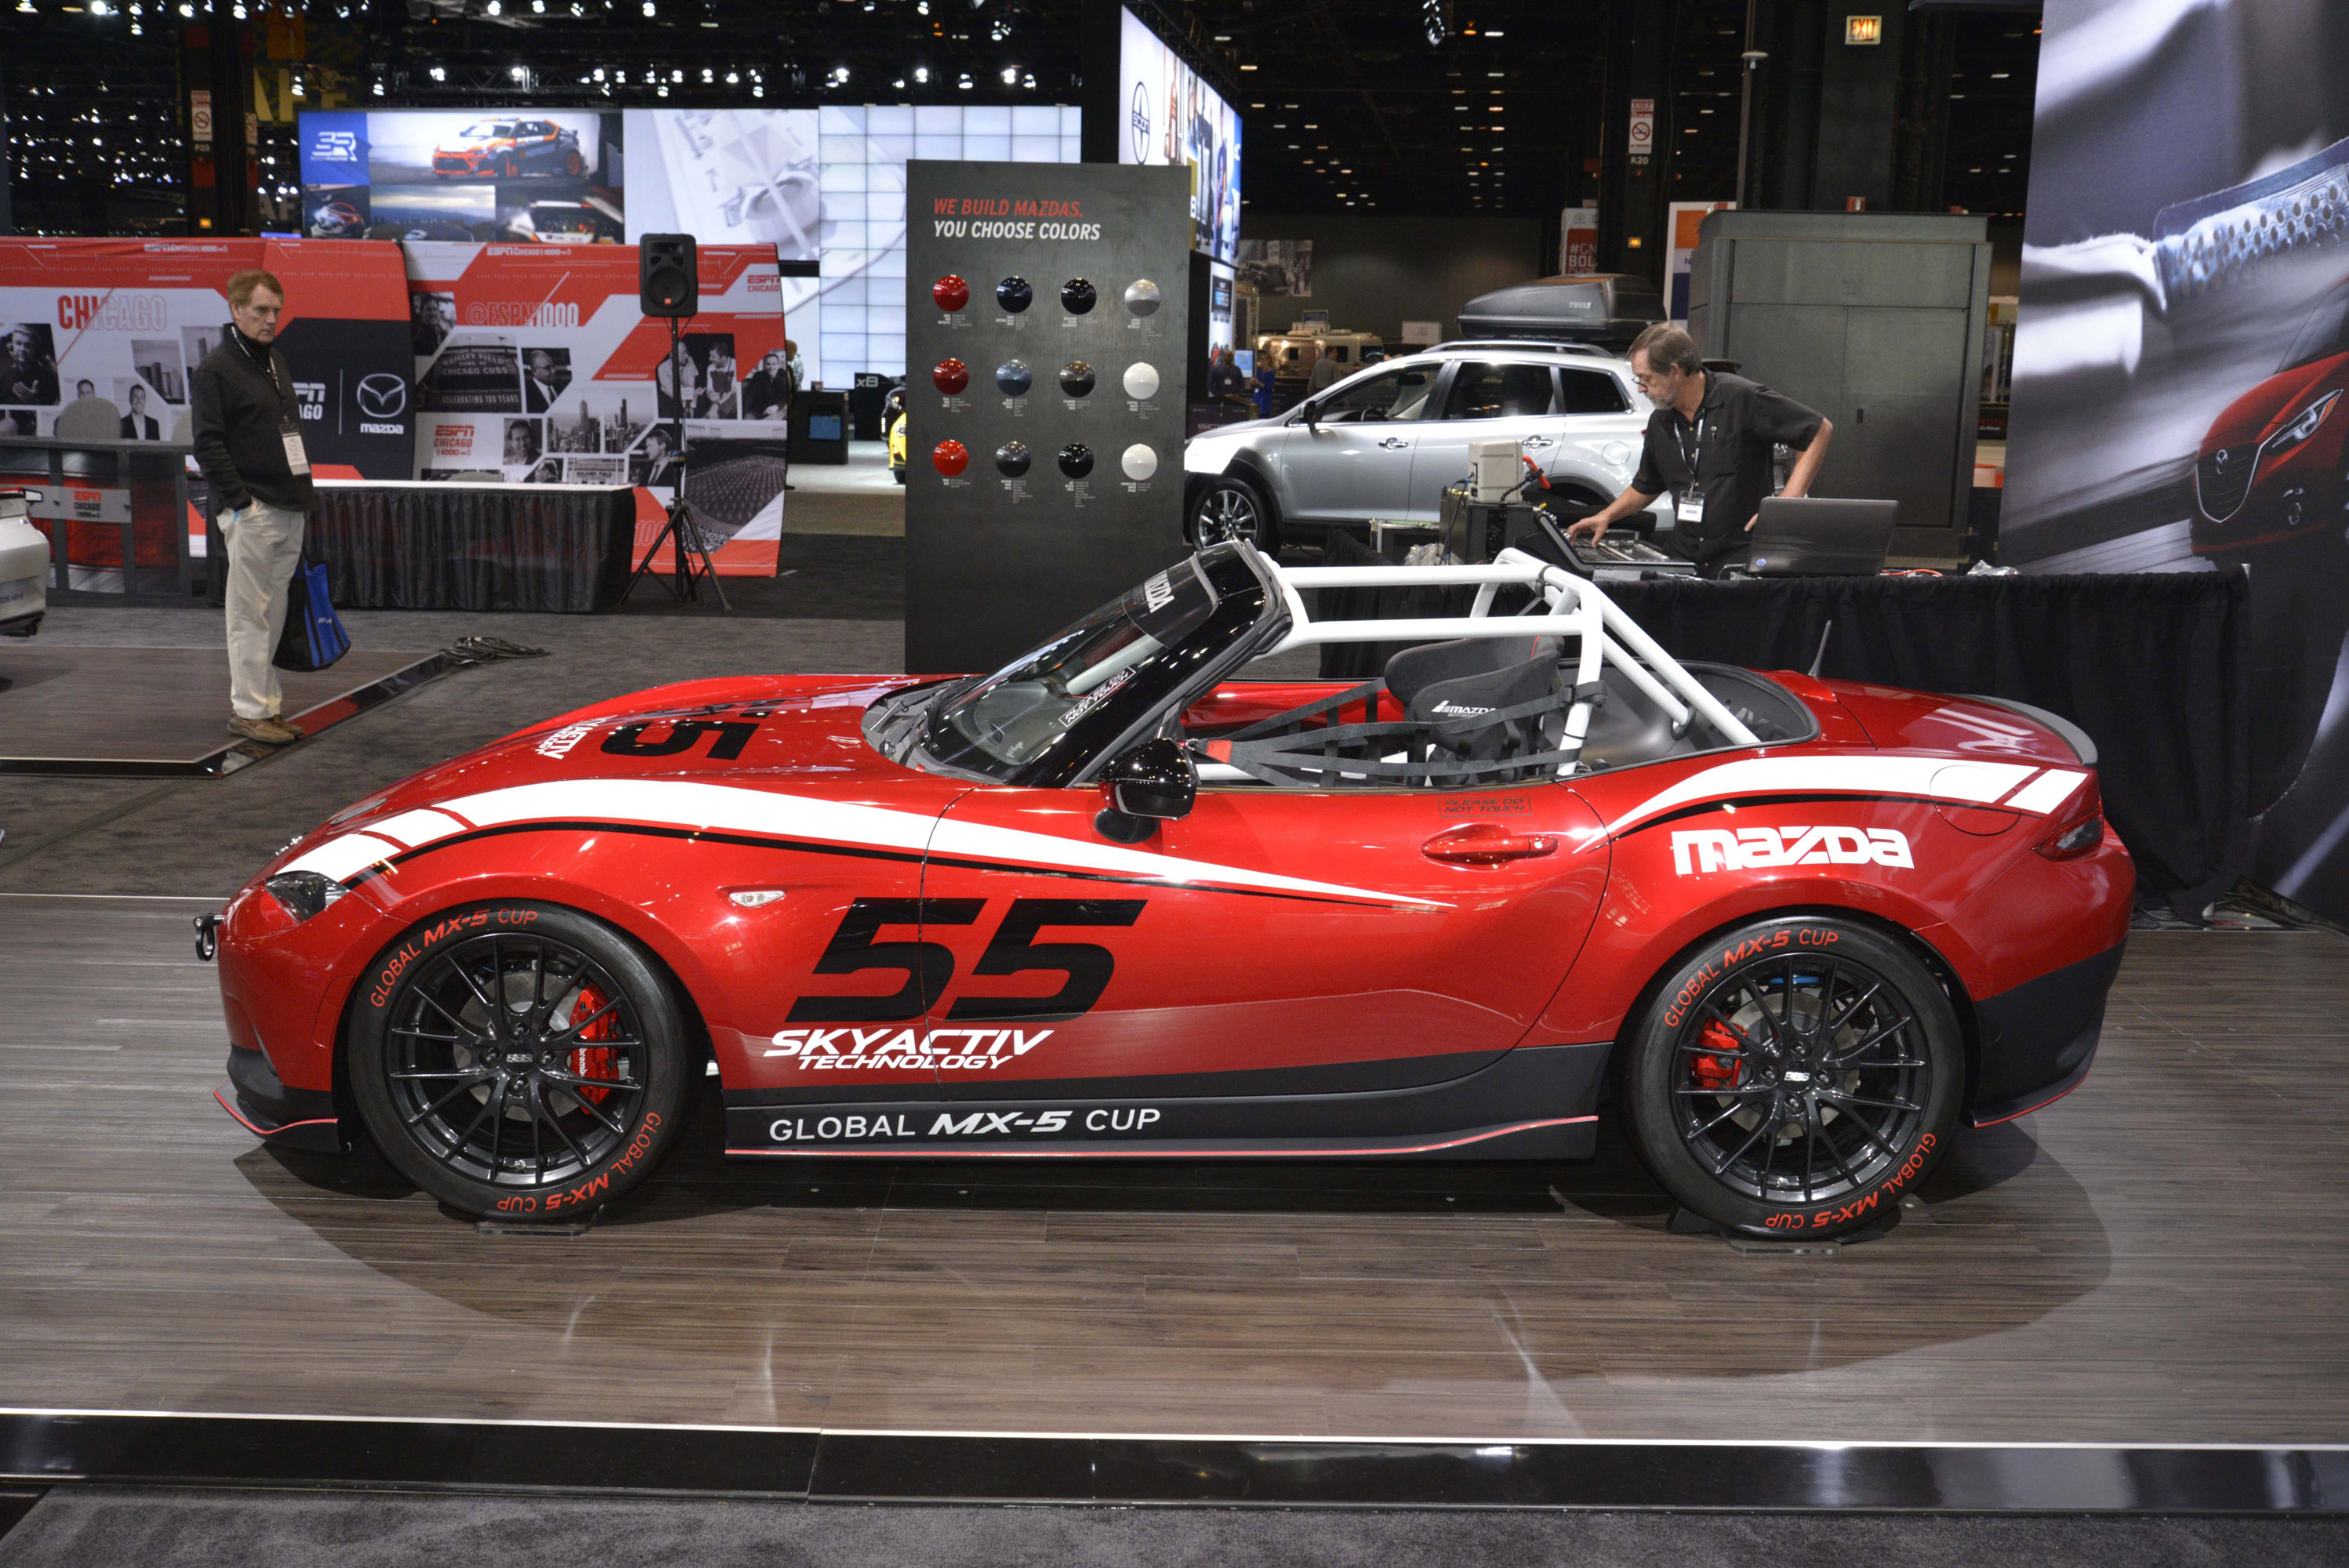 Mazda 2016 Global Mx 5 Cup Race Car Chicago 2015 Picture